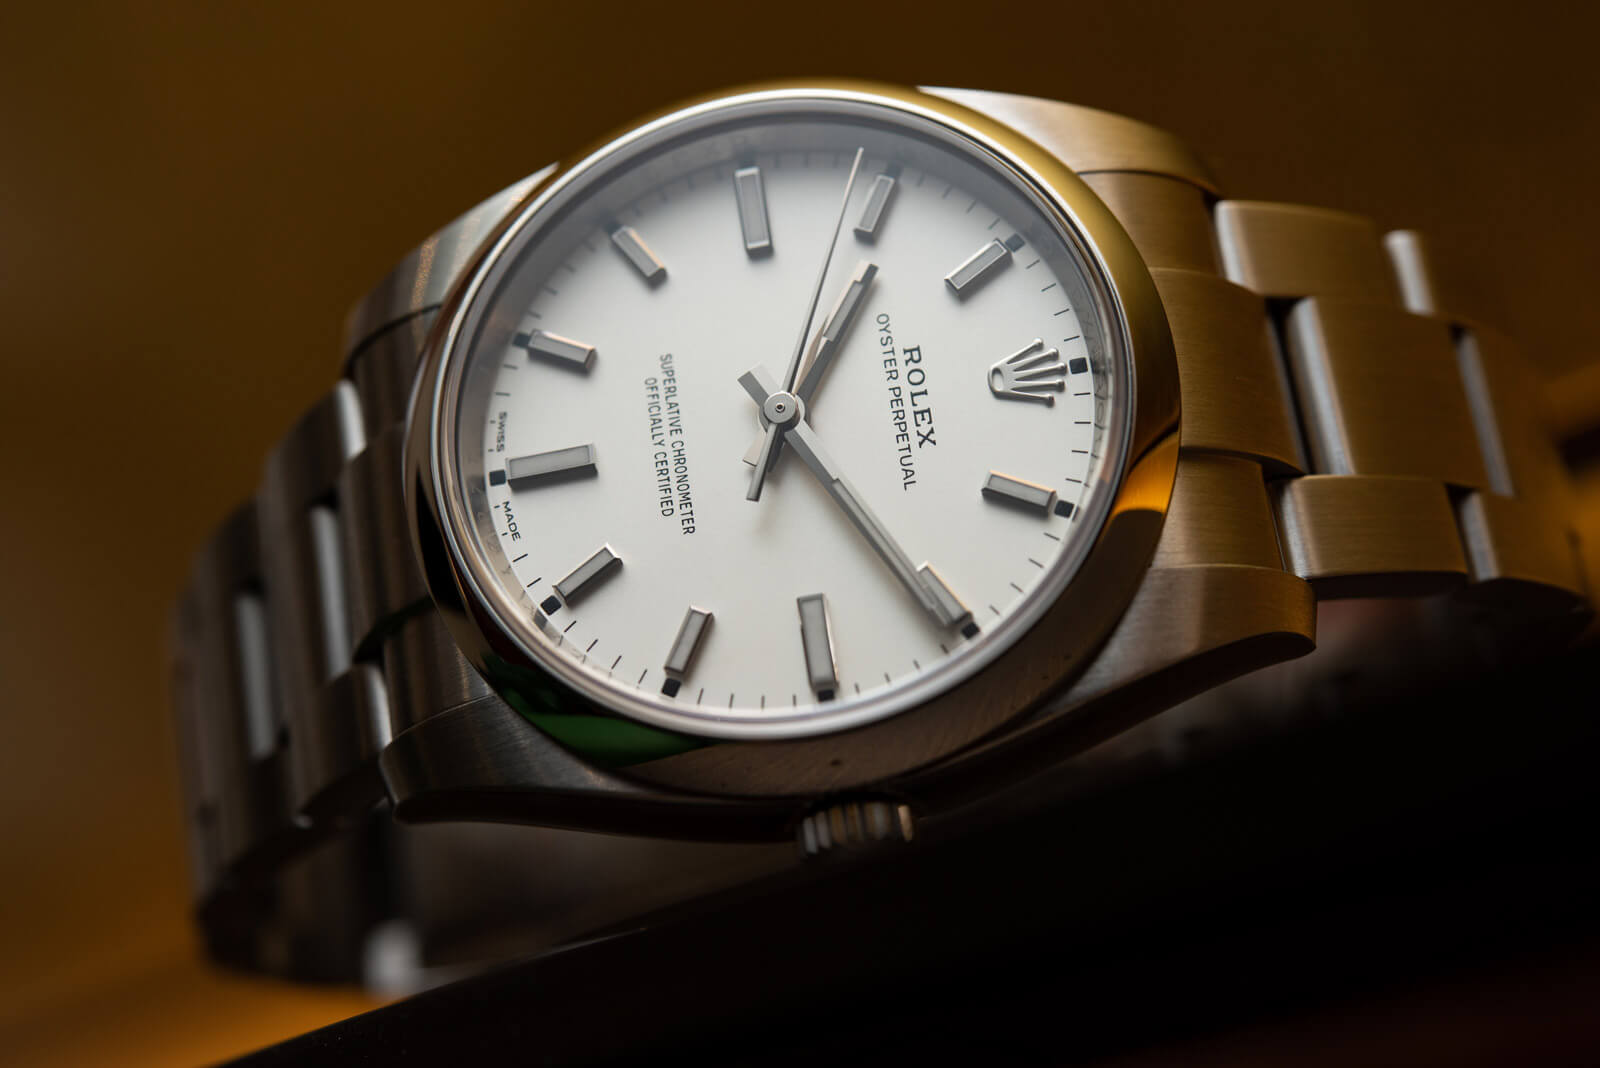 Rolex Oyster Perpetual 34 - Ref. 114200